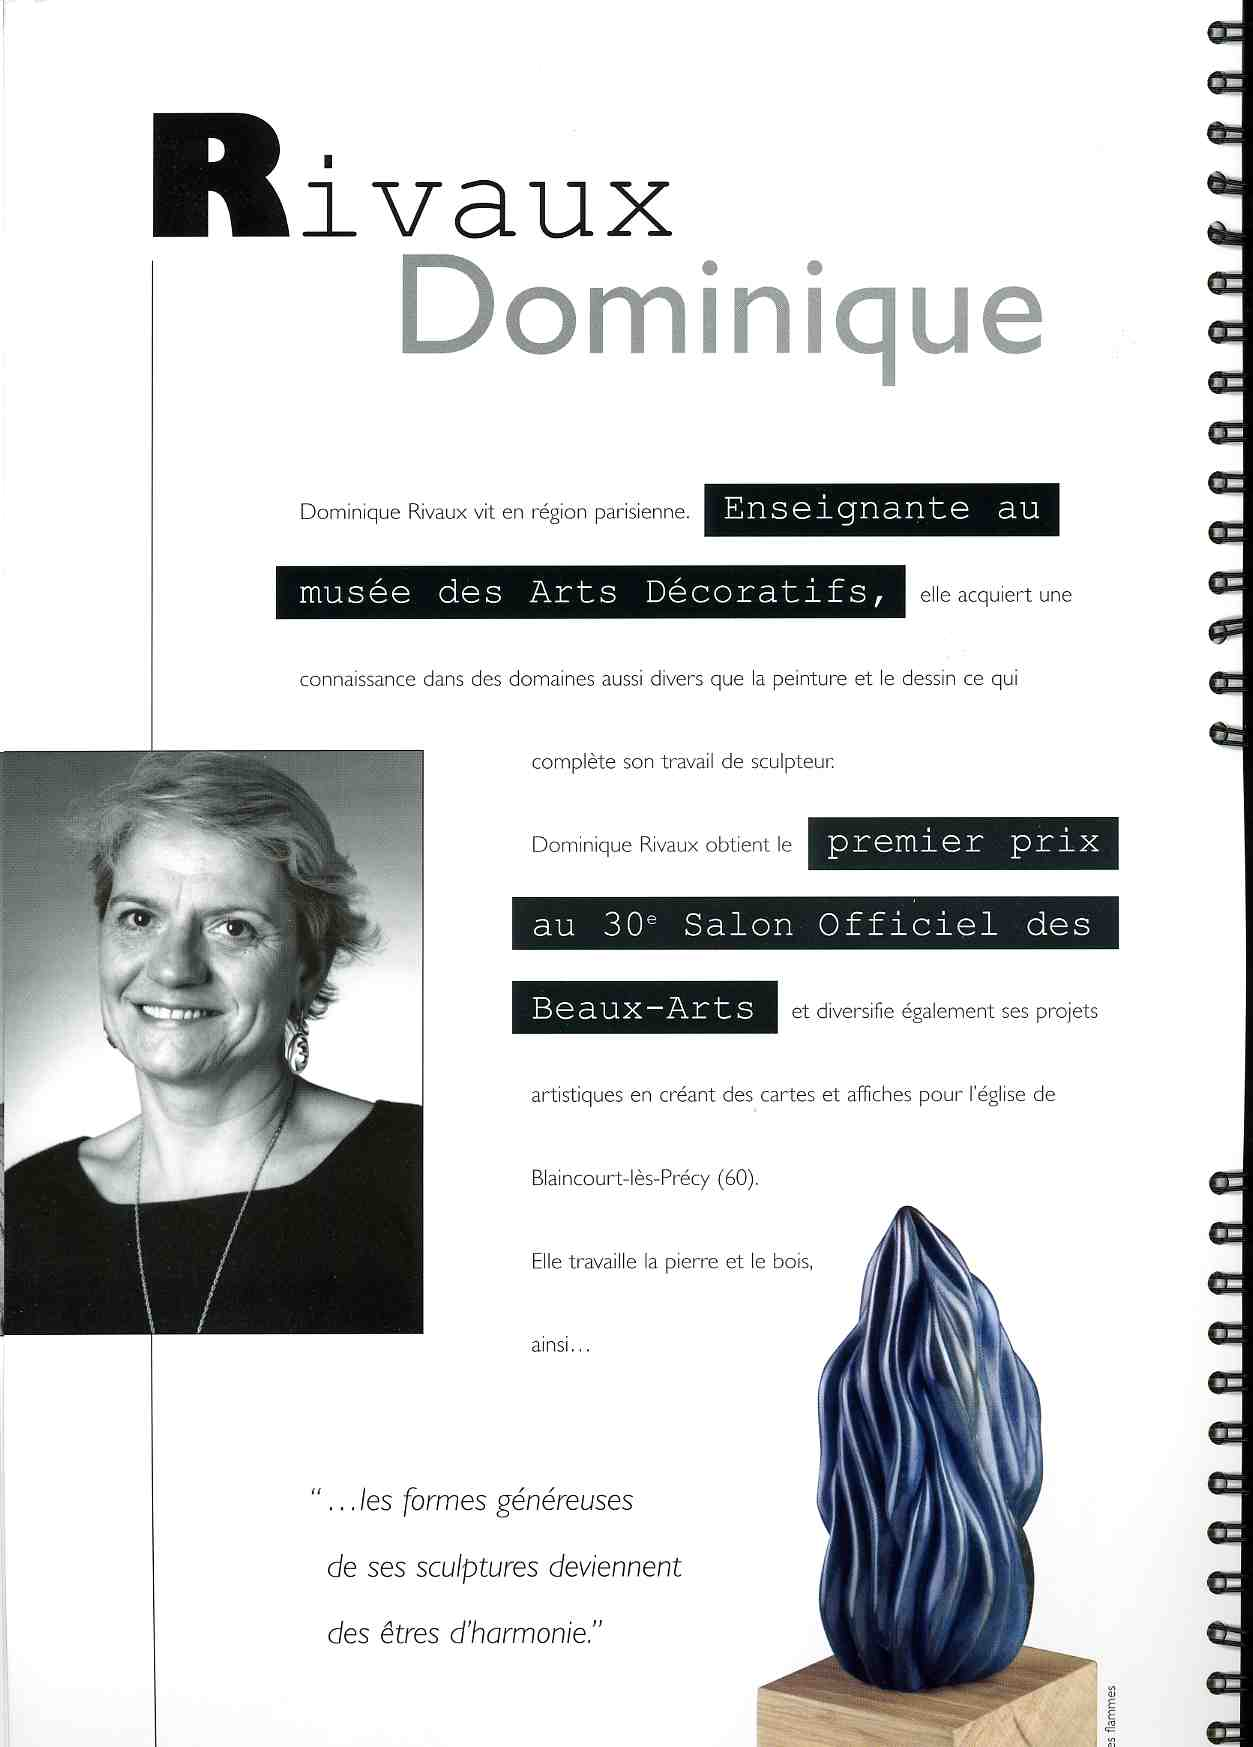 Catalogue Mécénat - OFILVAMO 2000-2006 - Dominique Rivaux